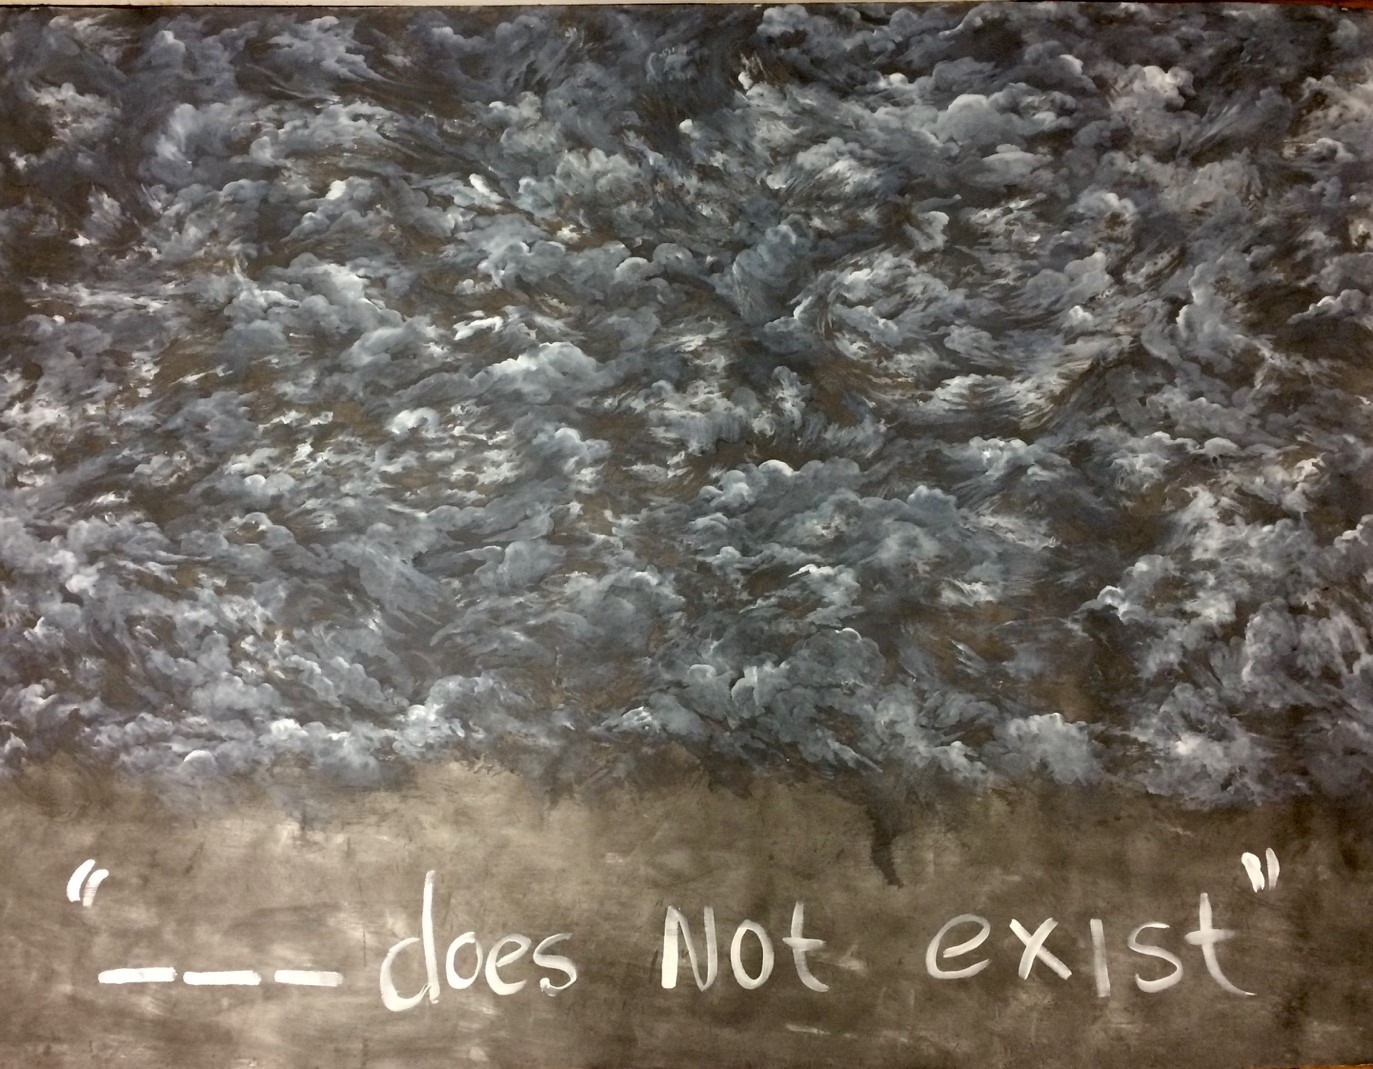 '--- Does Not Exist'                                                Oil and Graphite on Linen, 2200mm x 1600mm